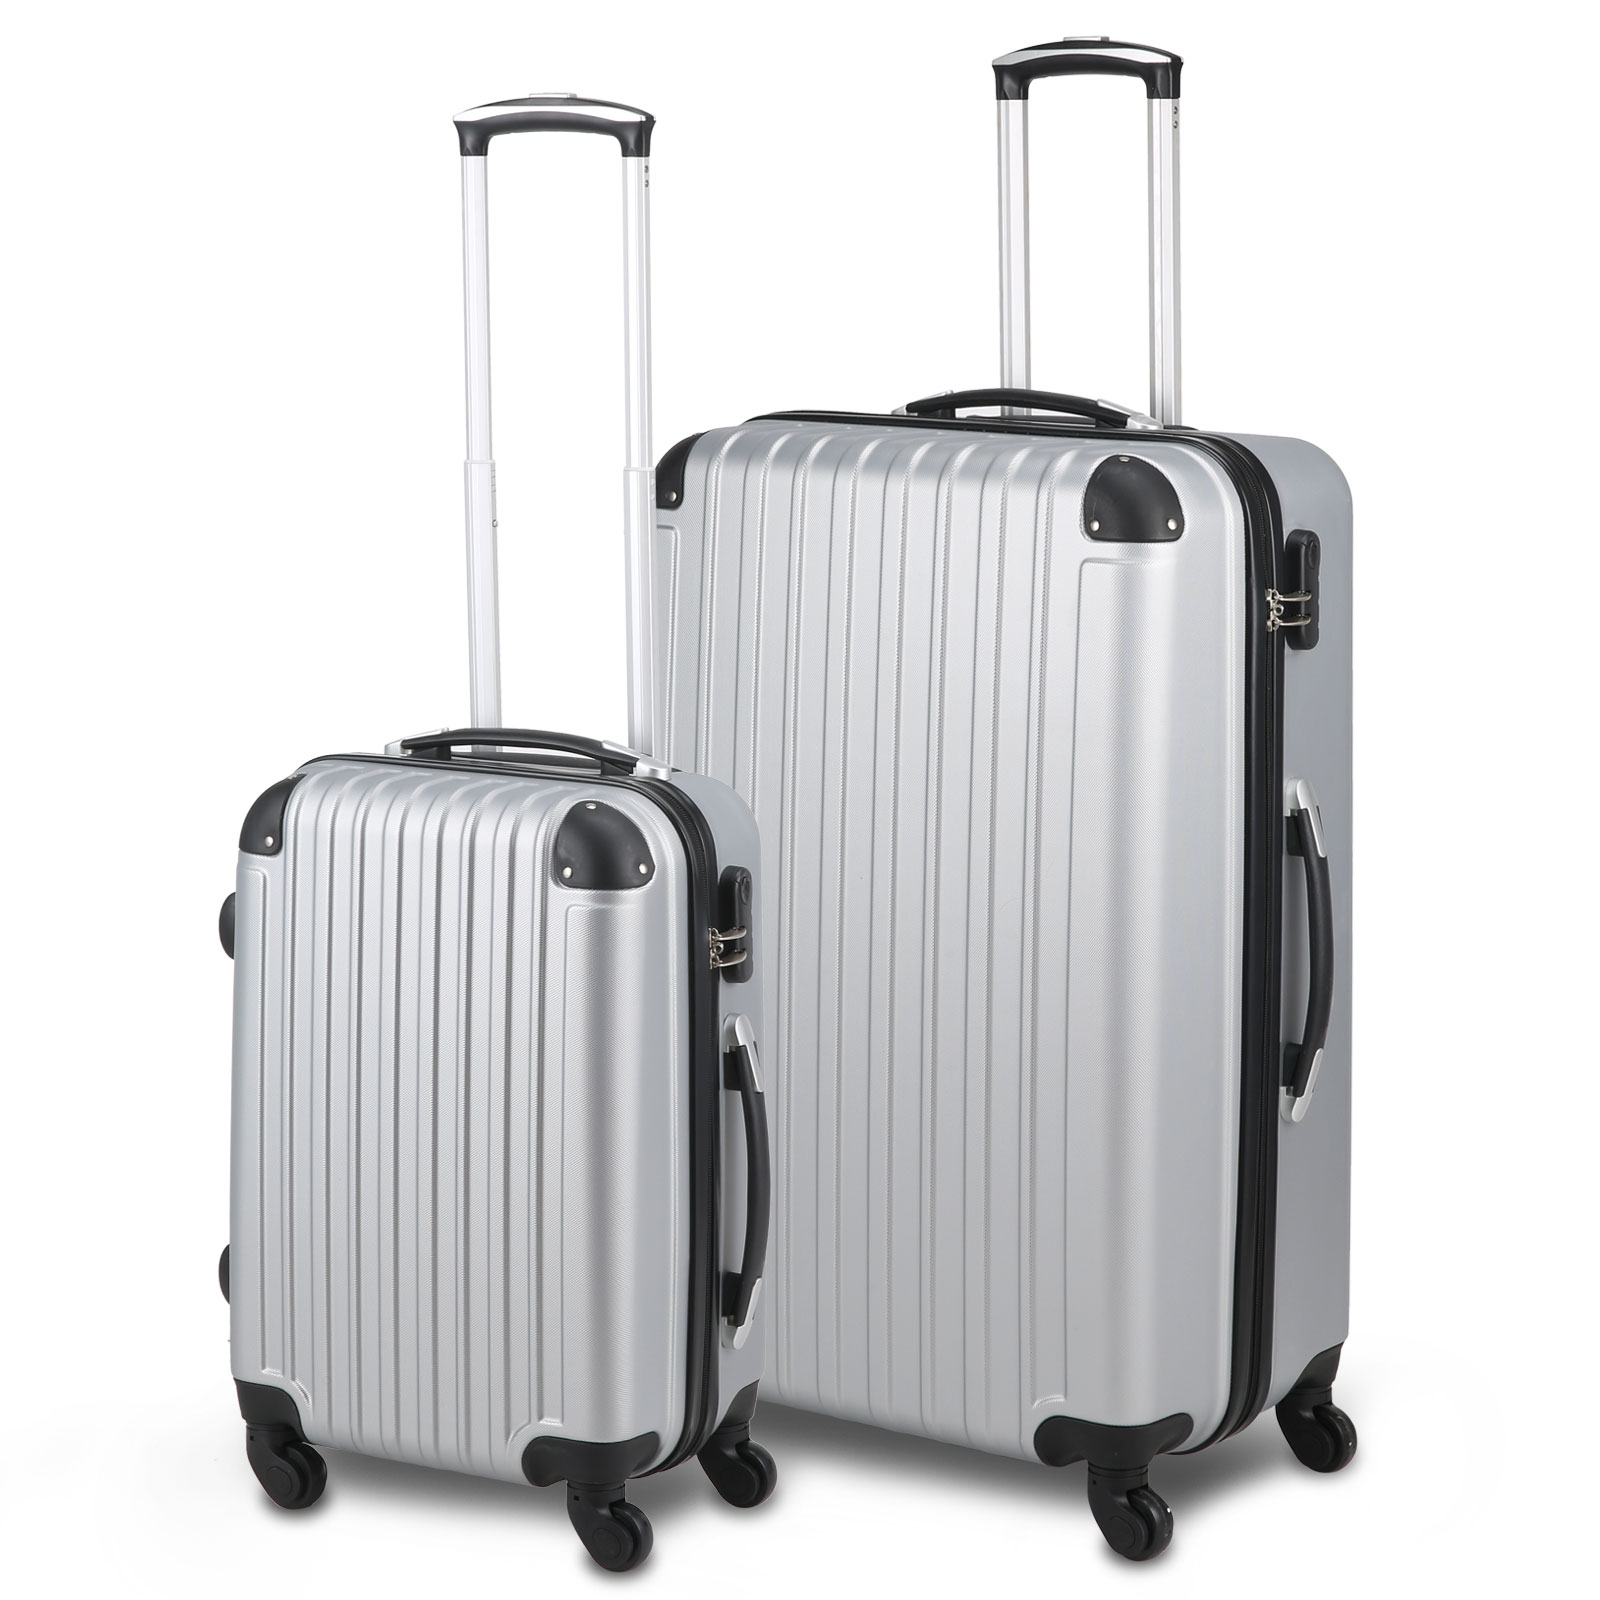 4 wheel 2 pieces luggage suitcase trolley set travel carry bag hard case silver ebay. Black Bedroom Furniture Sets. Home Design Ideas